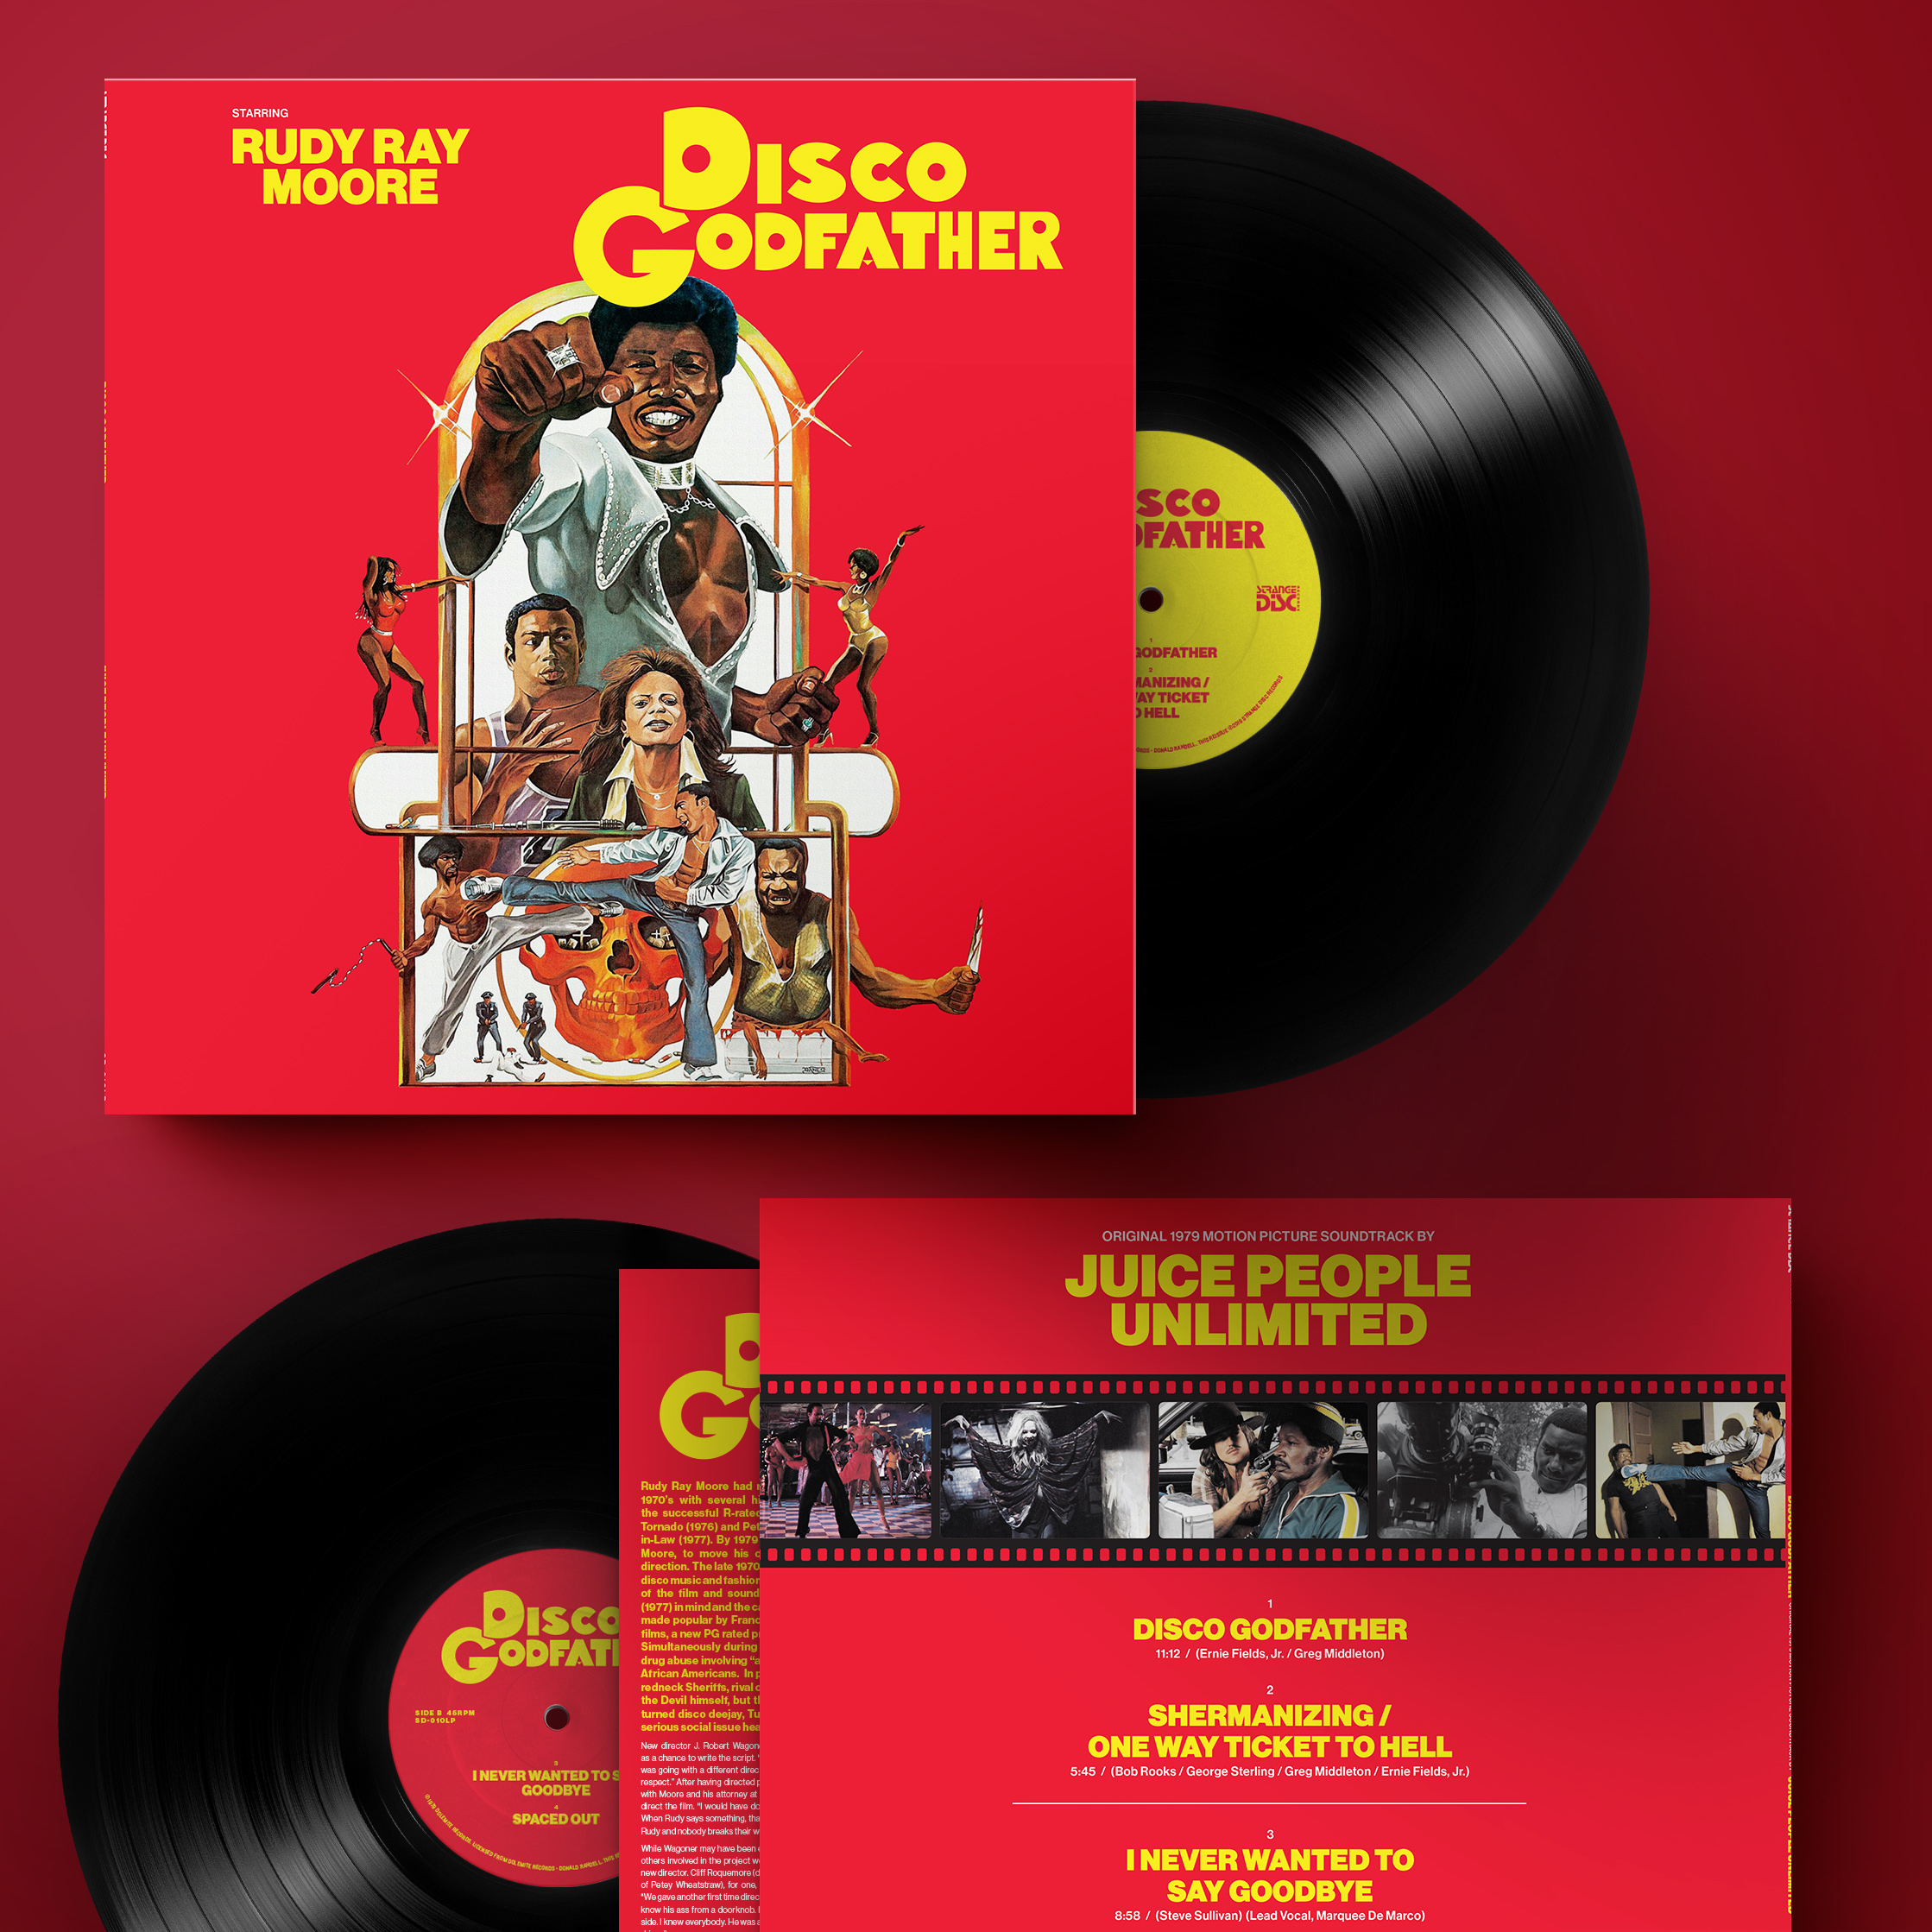 Disco Godfather (Original 1979 Motion Picture Soundtrack) (UK/EU RSD Exclusive)